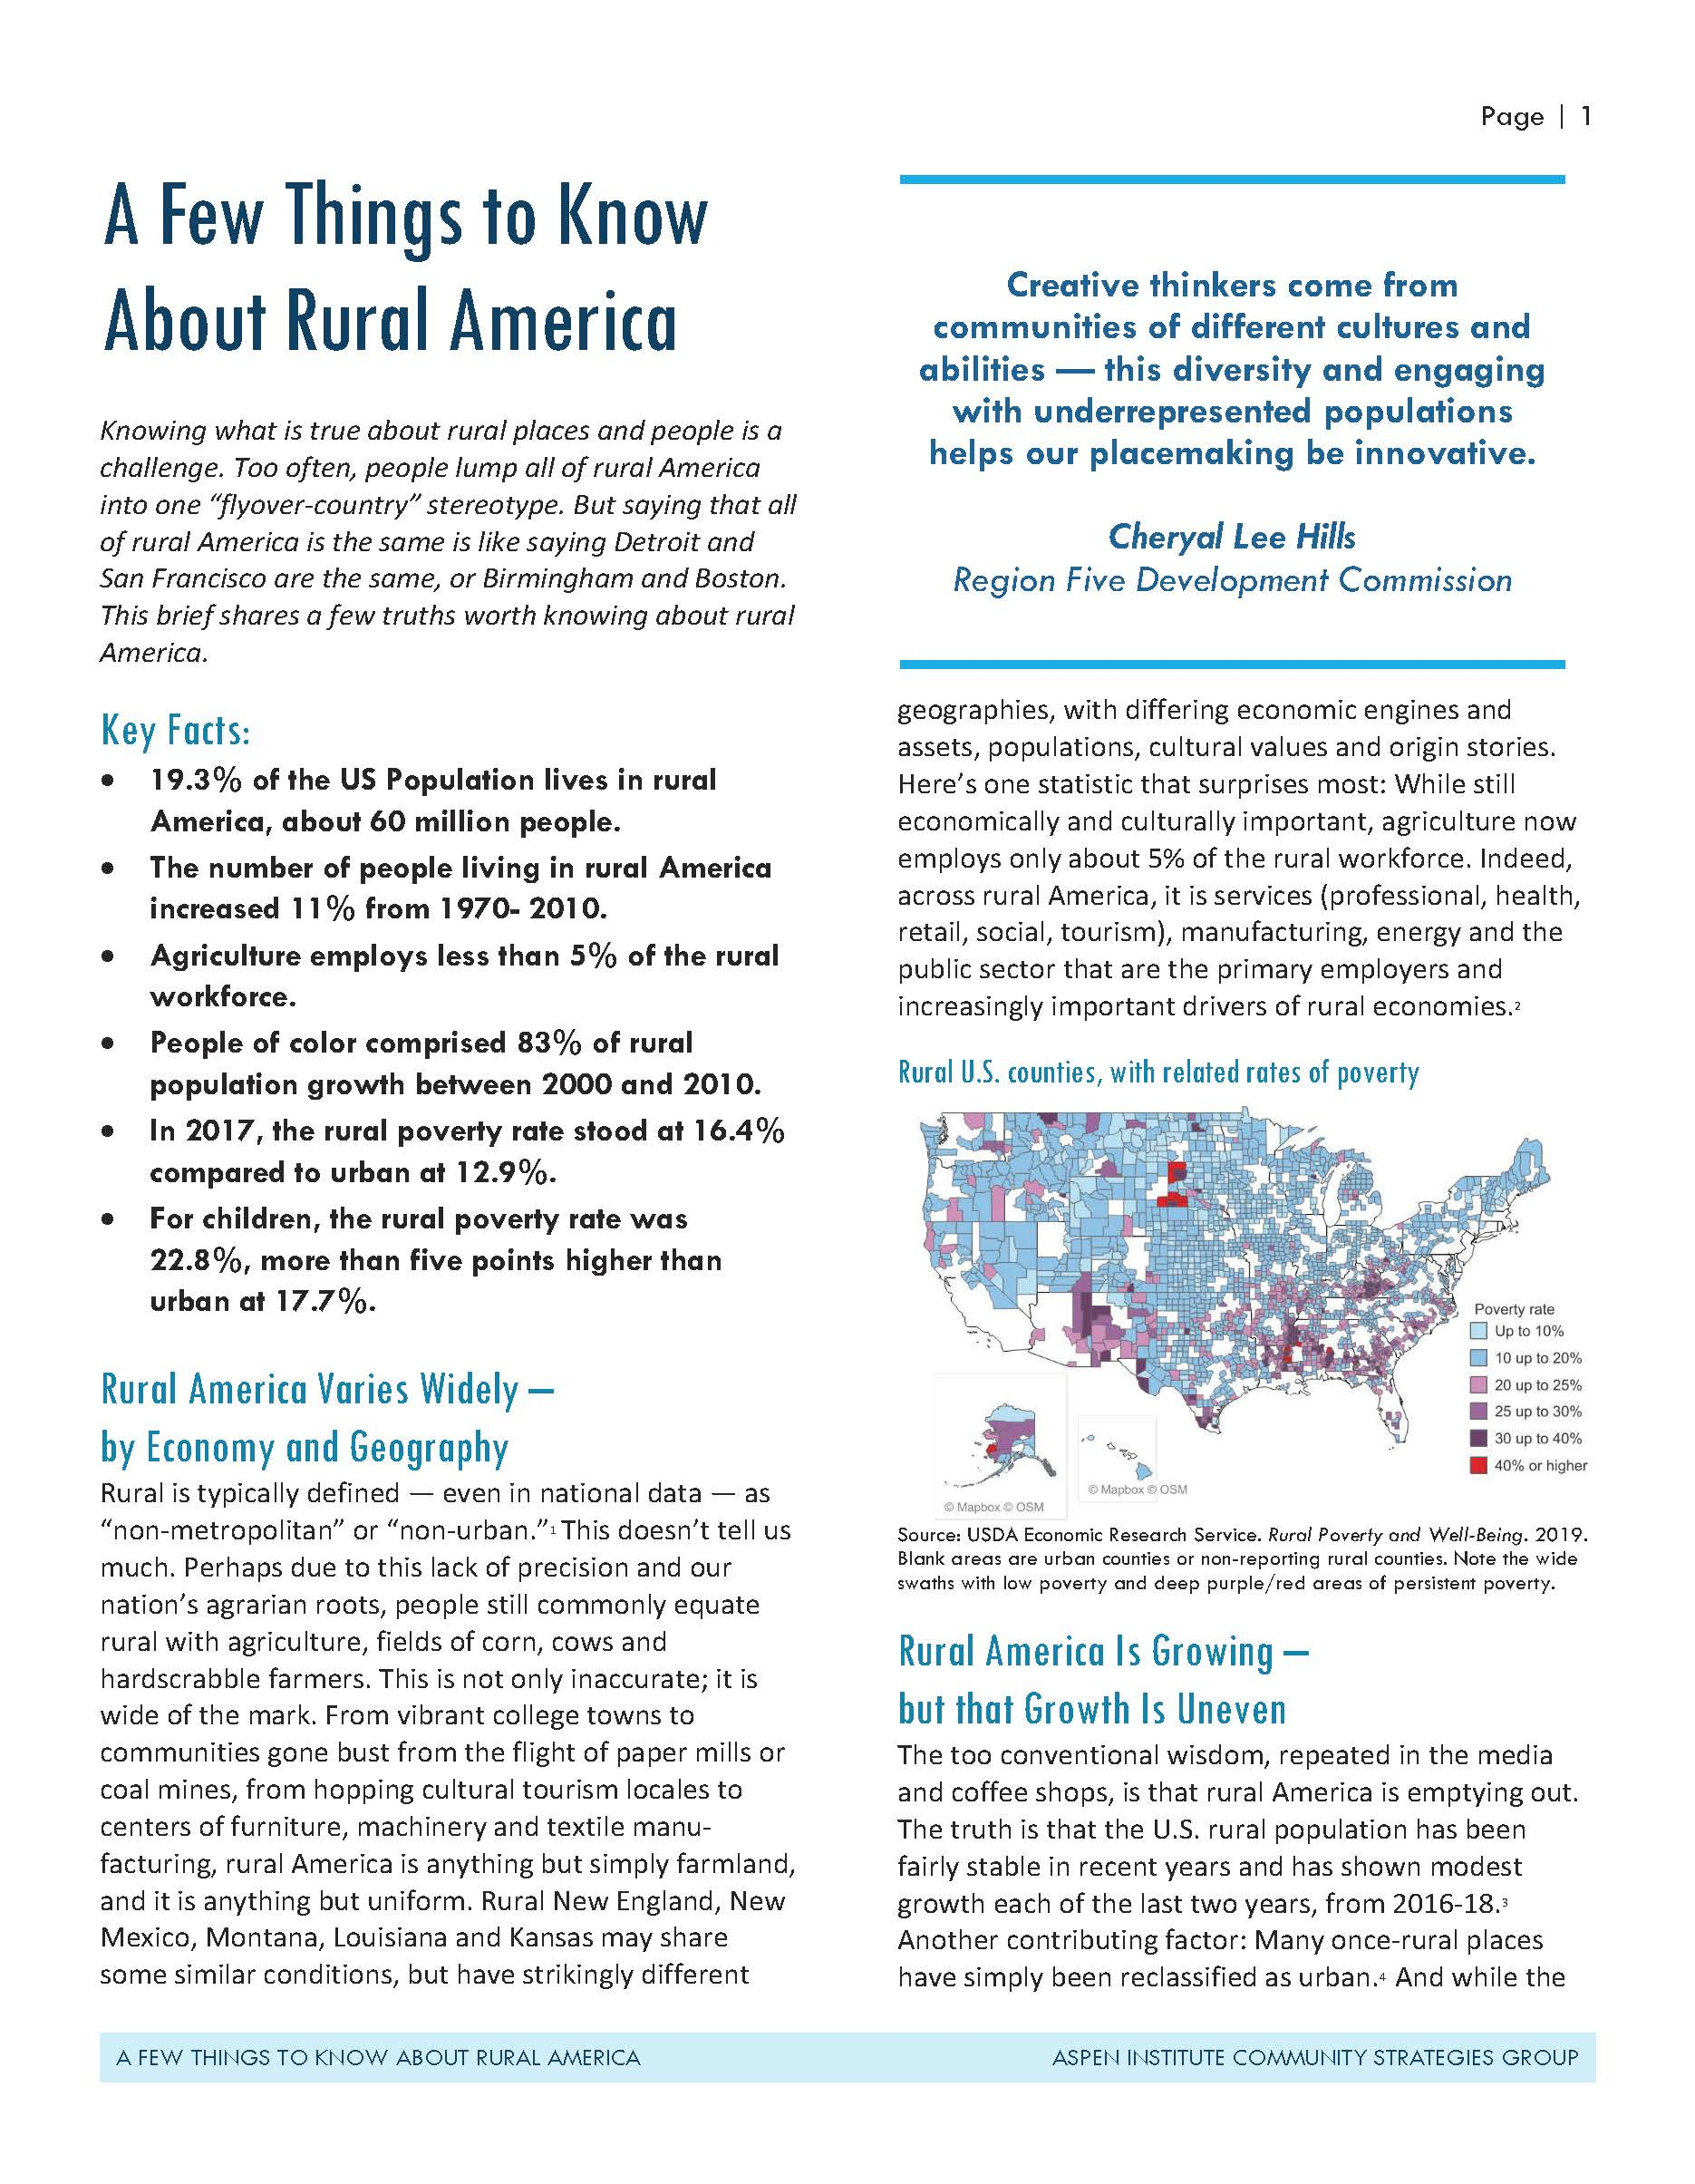 A Few Things to Know About Rural America